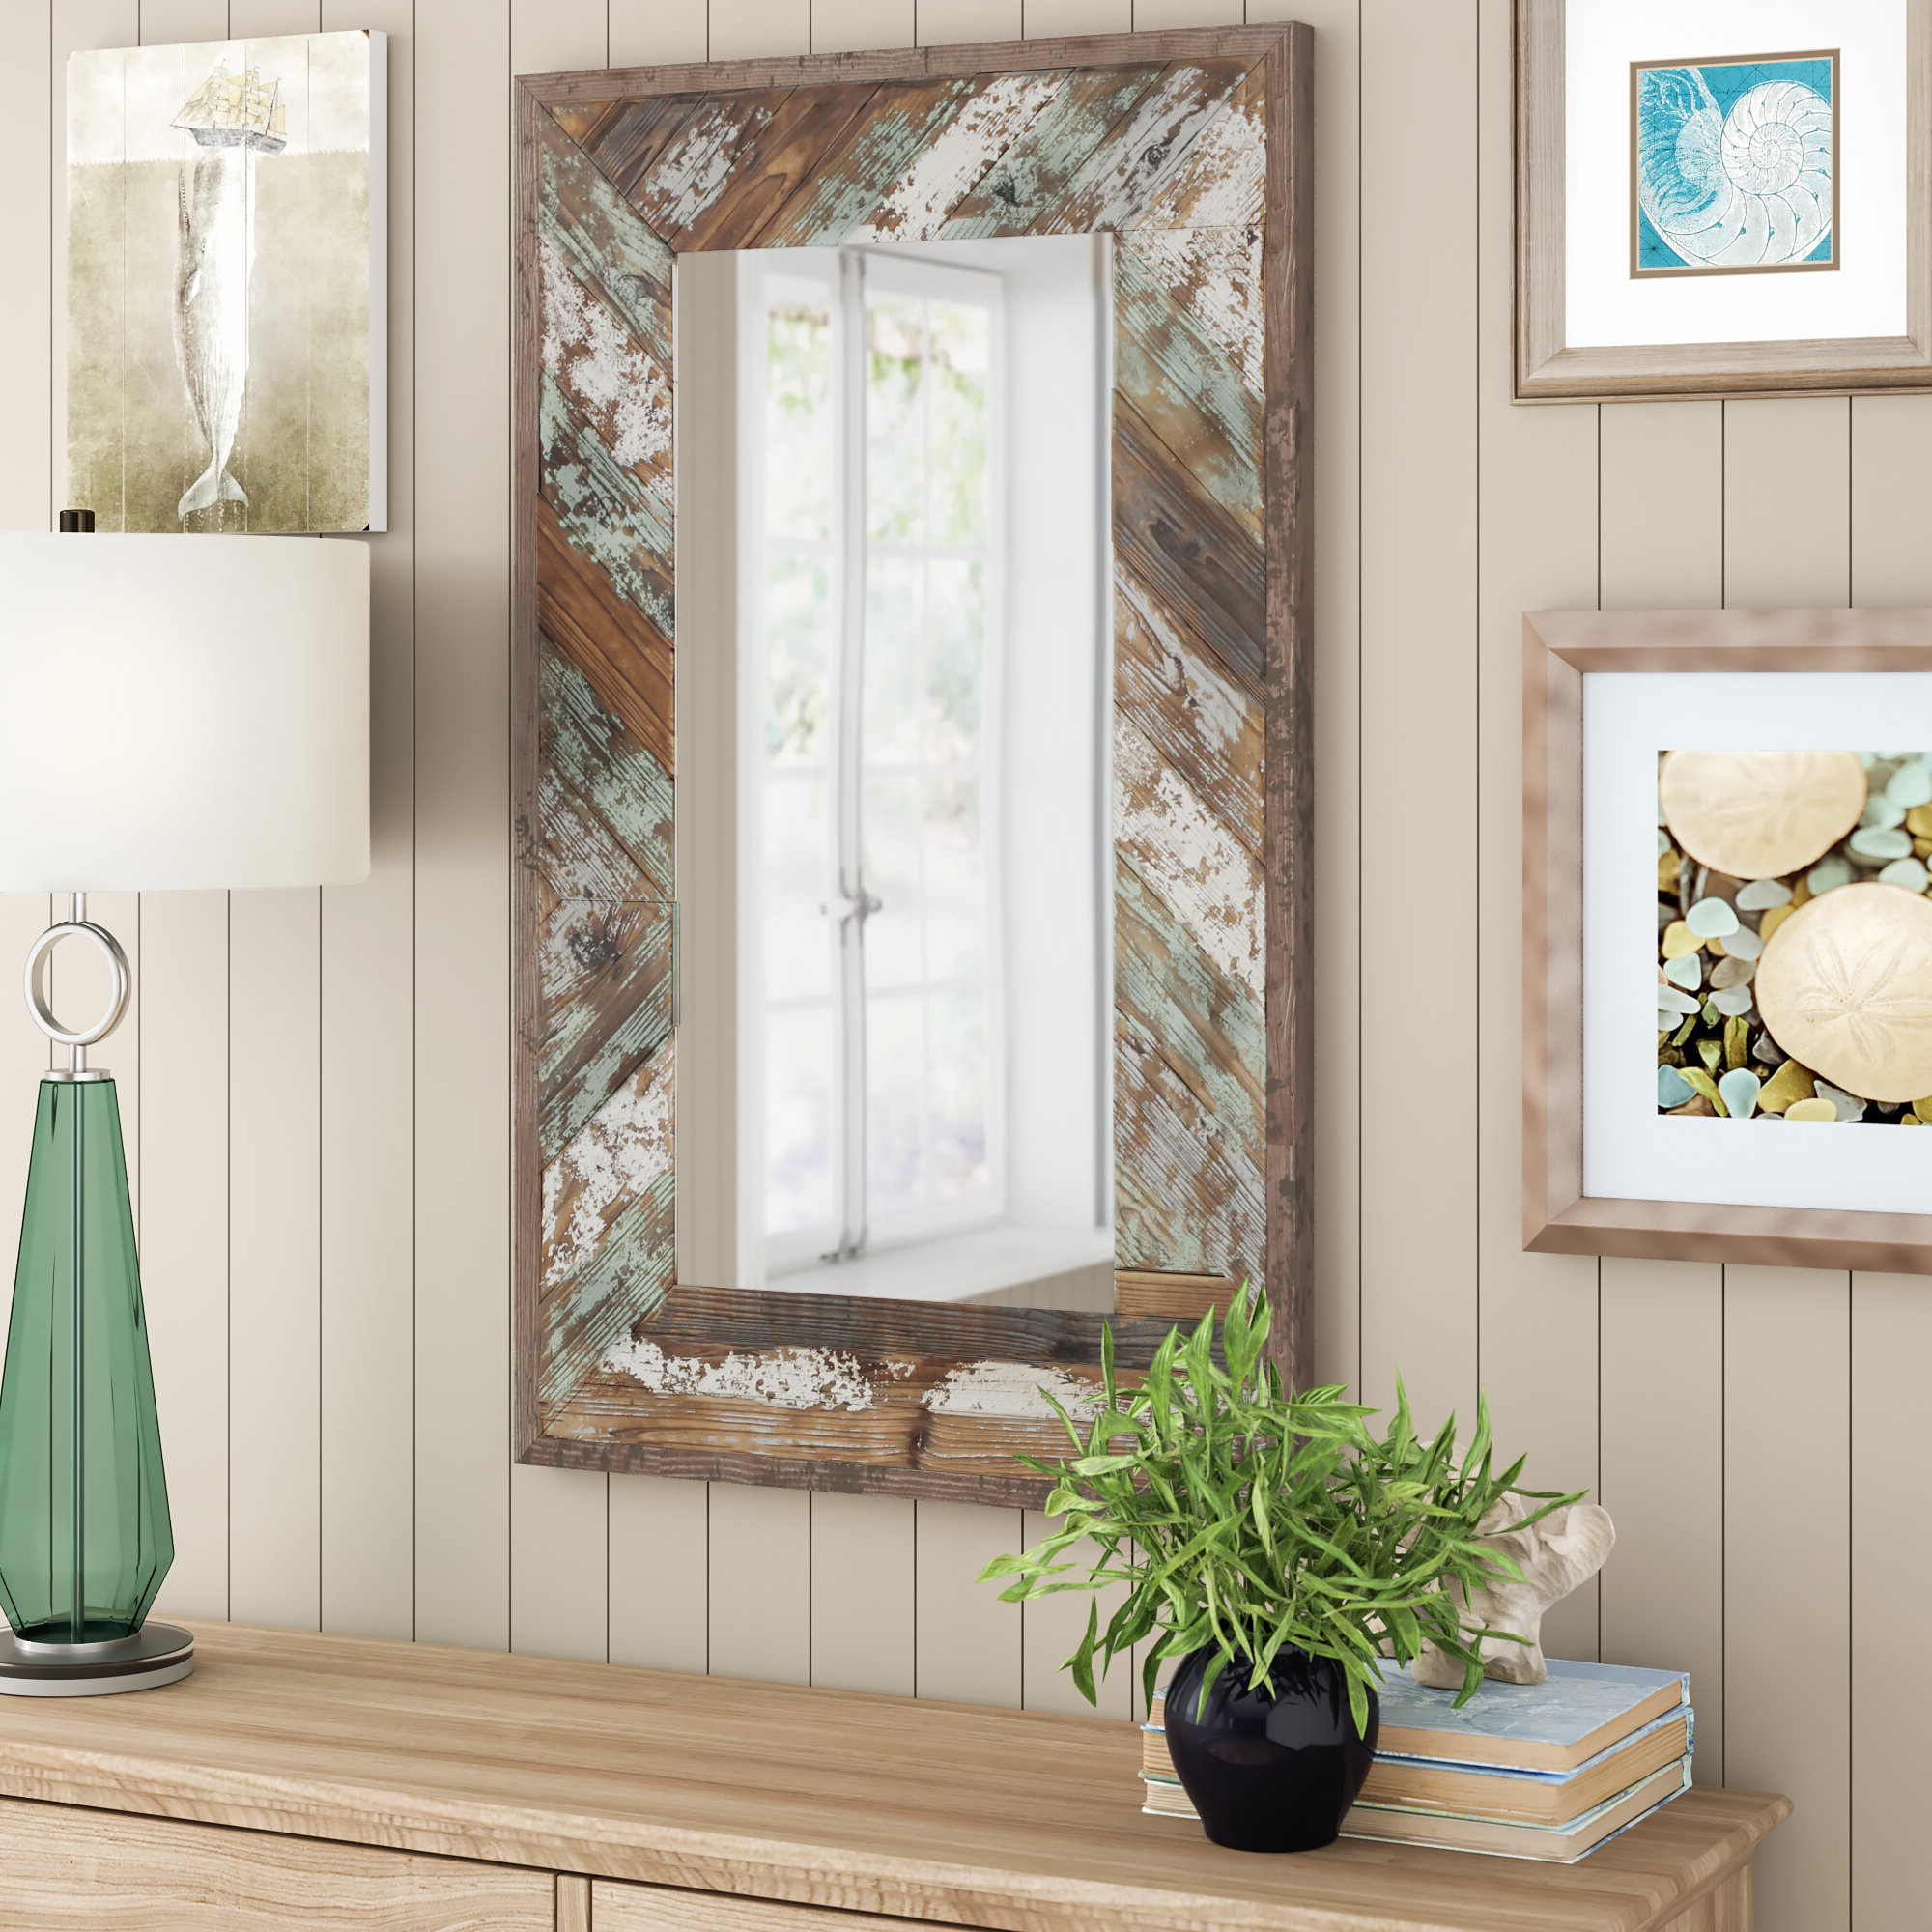 Yorktown Distressed Wood Slat Wall Mirror For Fashionable Distressed Wood Wall Mirrors (View 20 of 20)